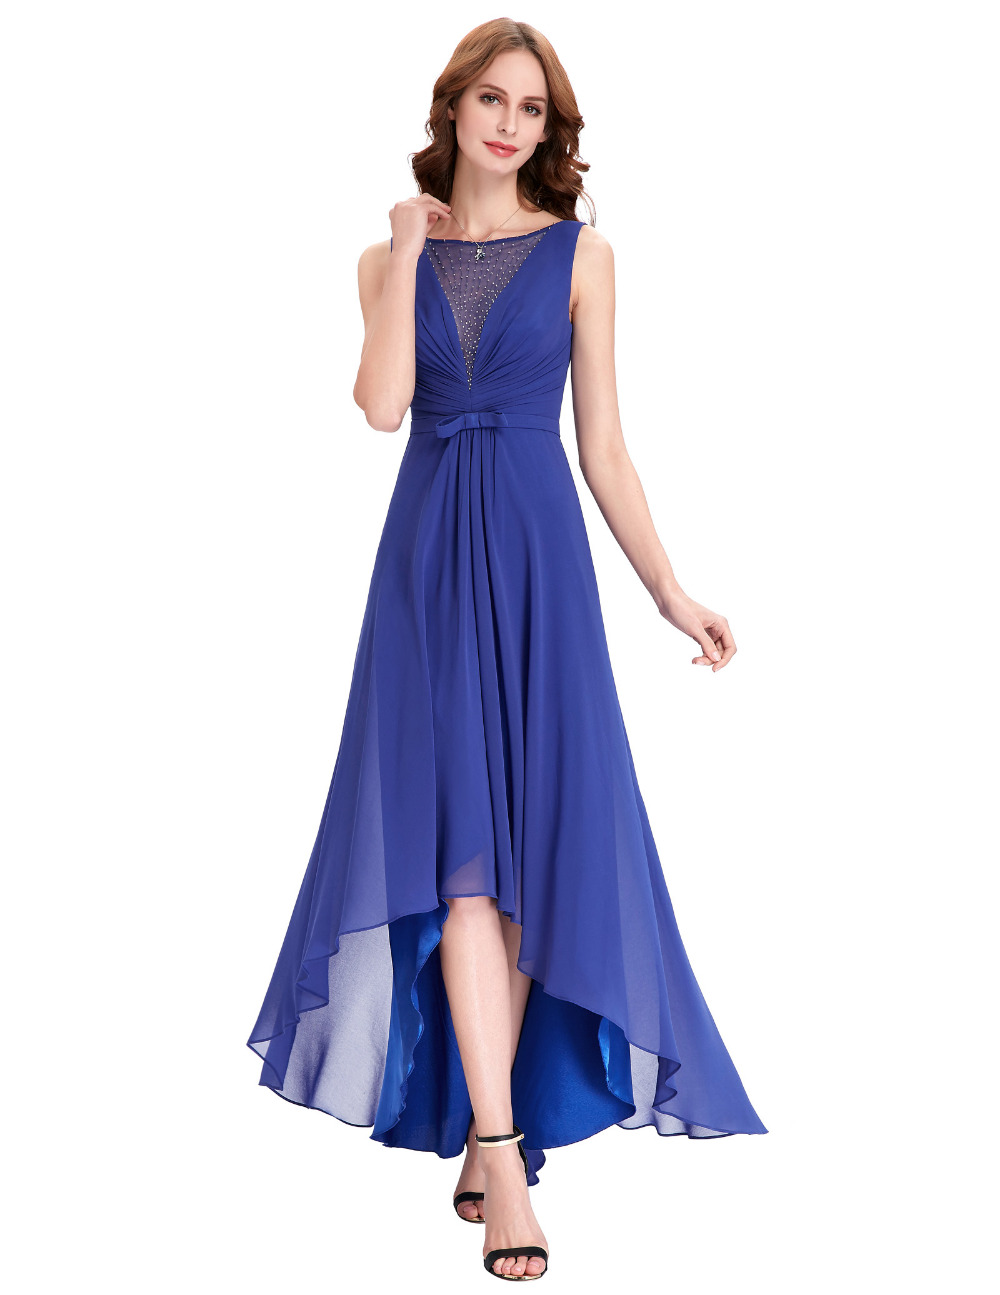 beach wedding guest attire formal wedding guest dresses An easy to shop selection of casual and dressy casual wedding guest dresses